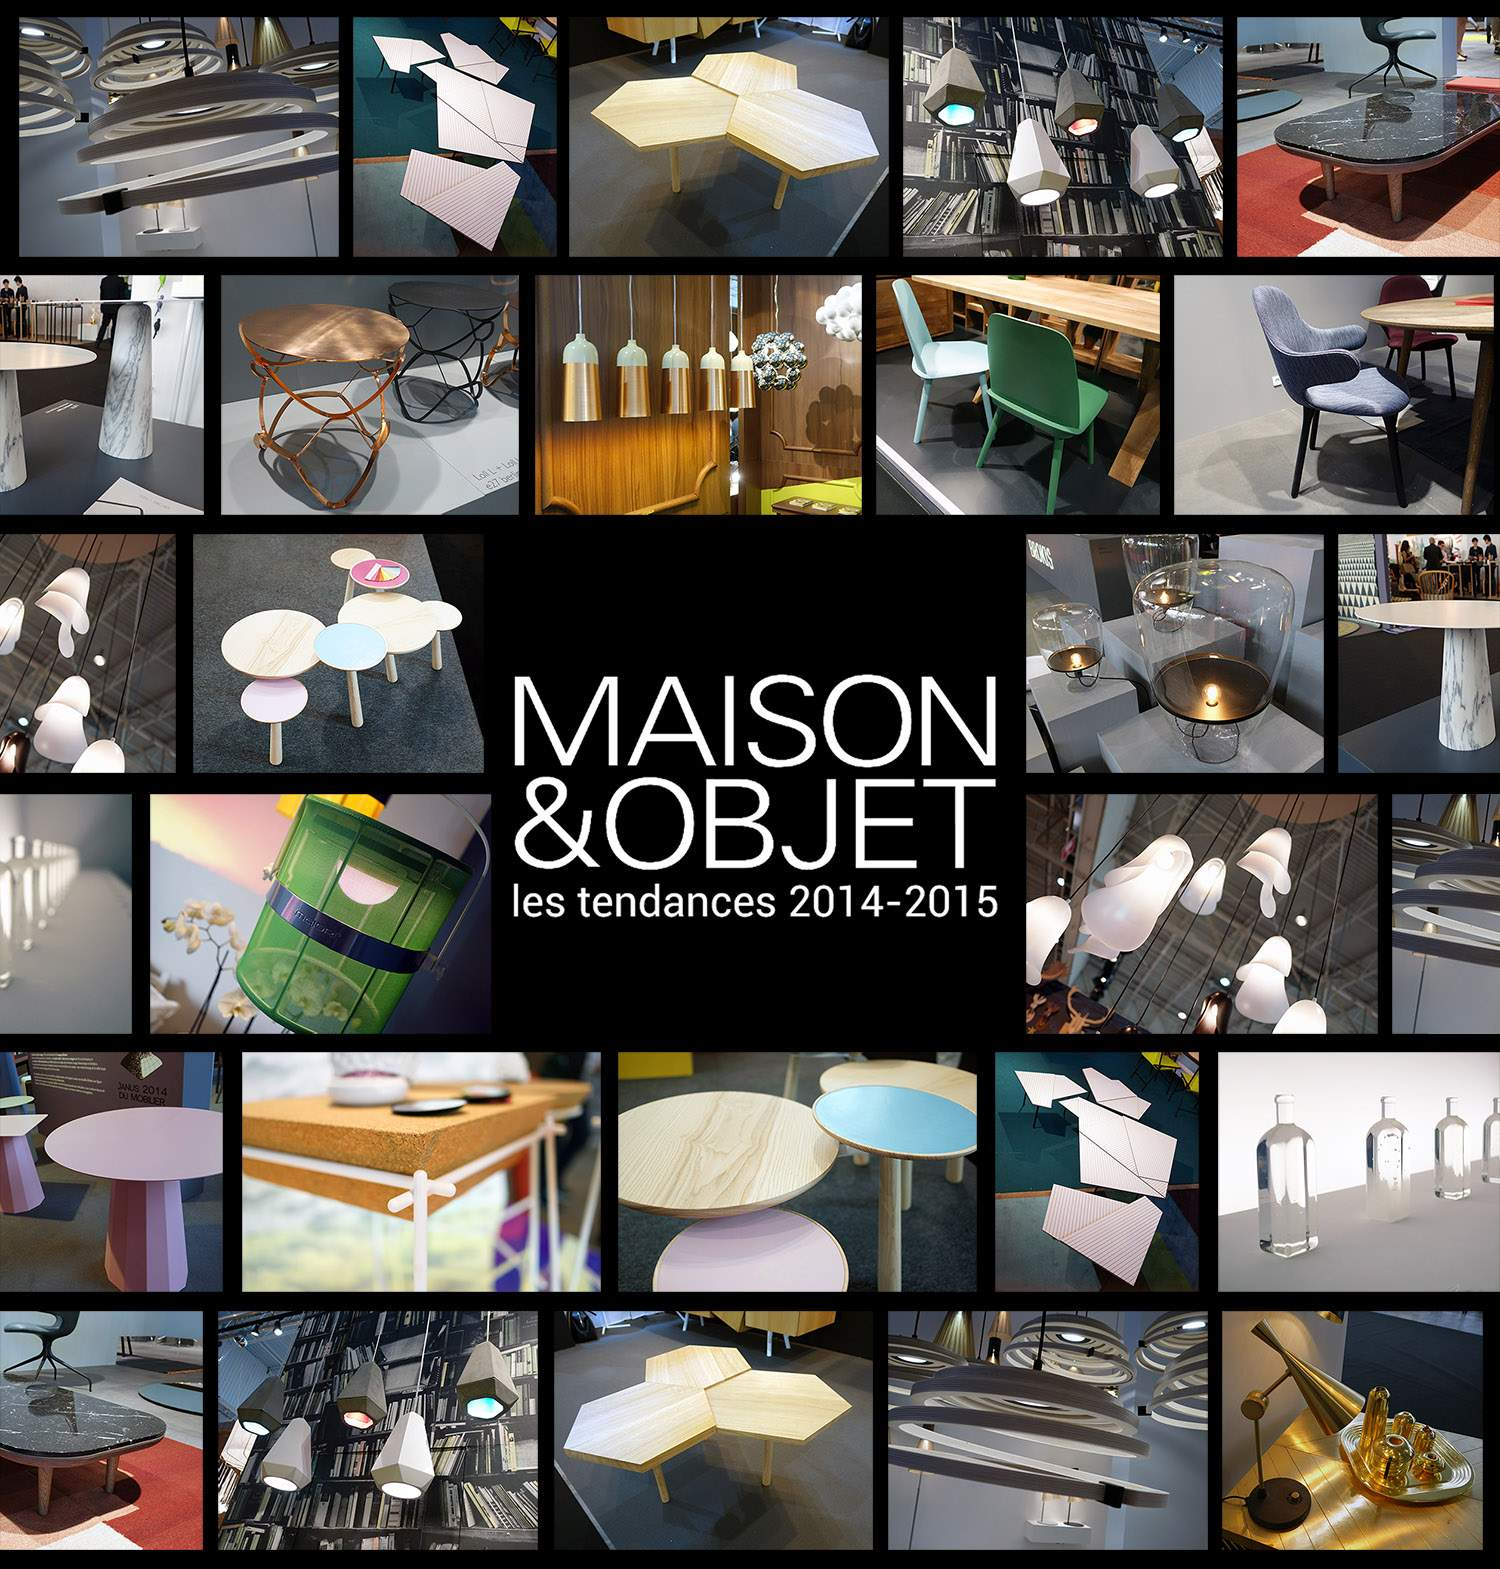 Salon maison et objet 2015 ev nements paris h tel for Salon des ce paris 2015